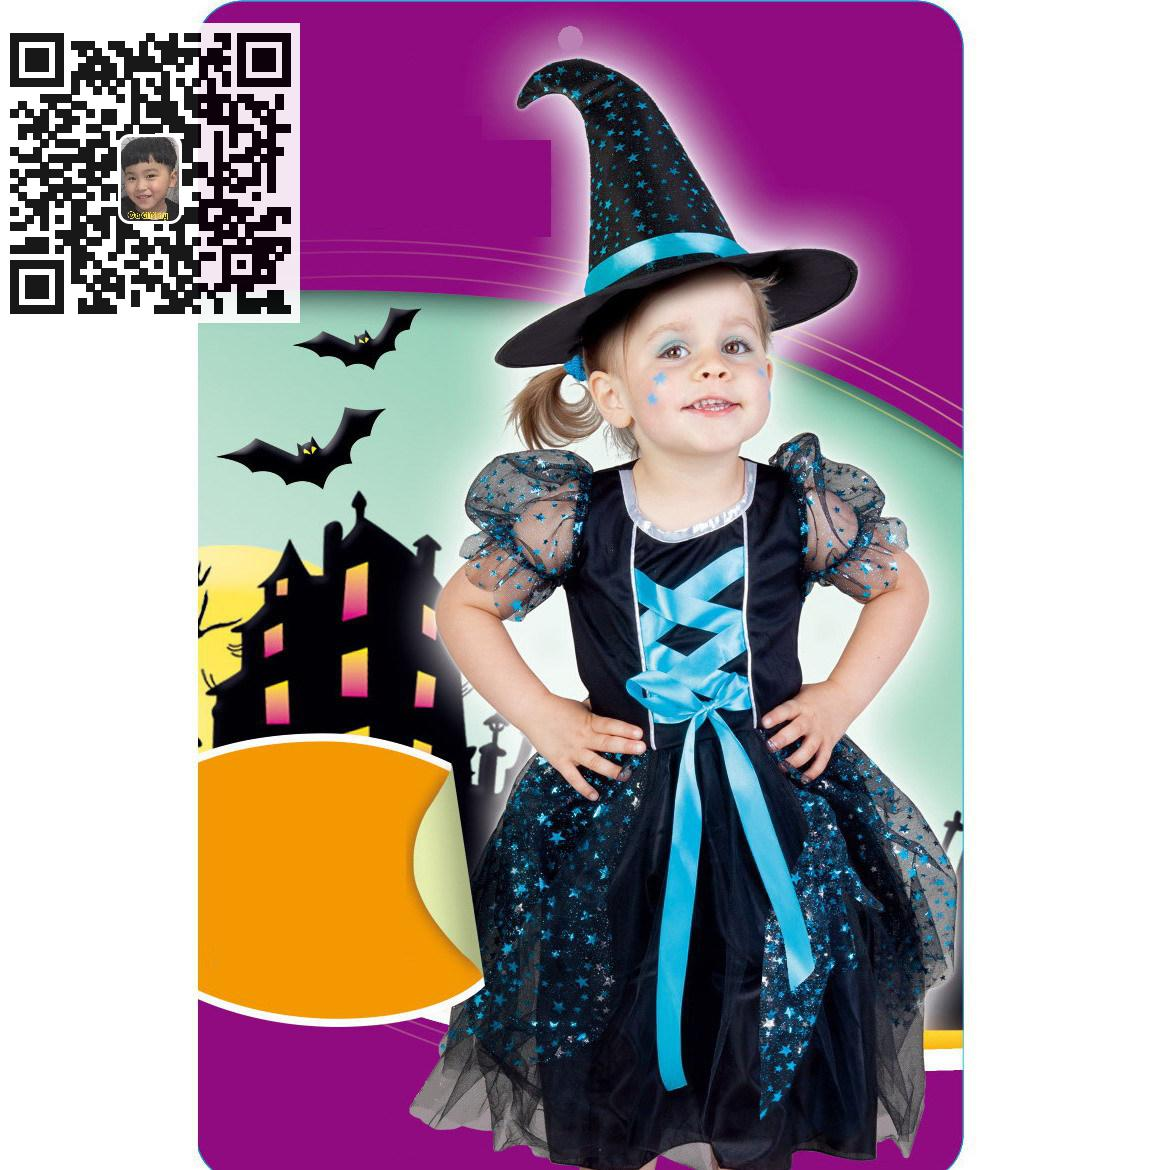 2019 New Deluxe Witch Dress Princess Dress Girl Carnival Cosplay Clothing Halloween Costume For Kids Age 3 10 Years in Girls Costumes from Novelty Special Use